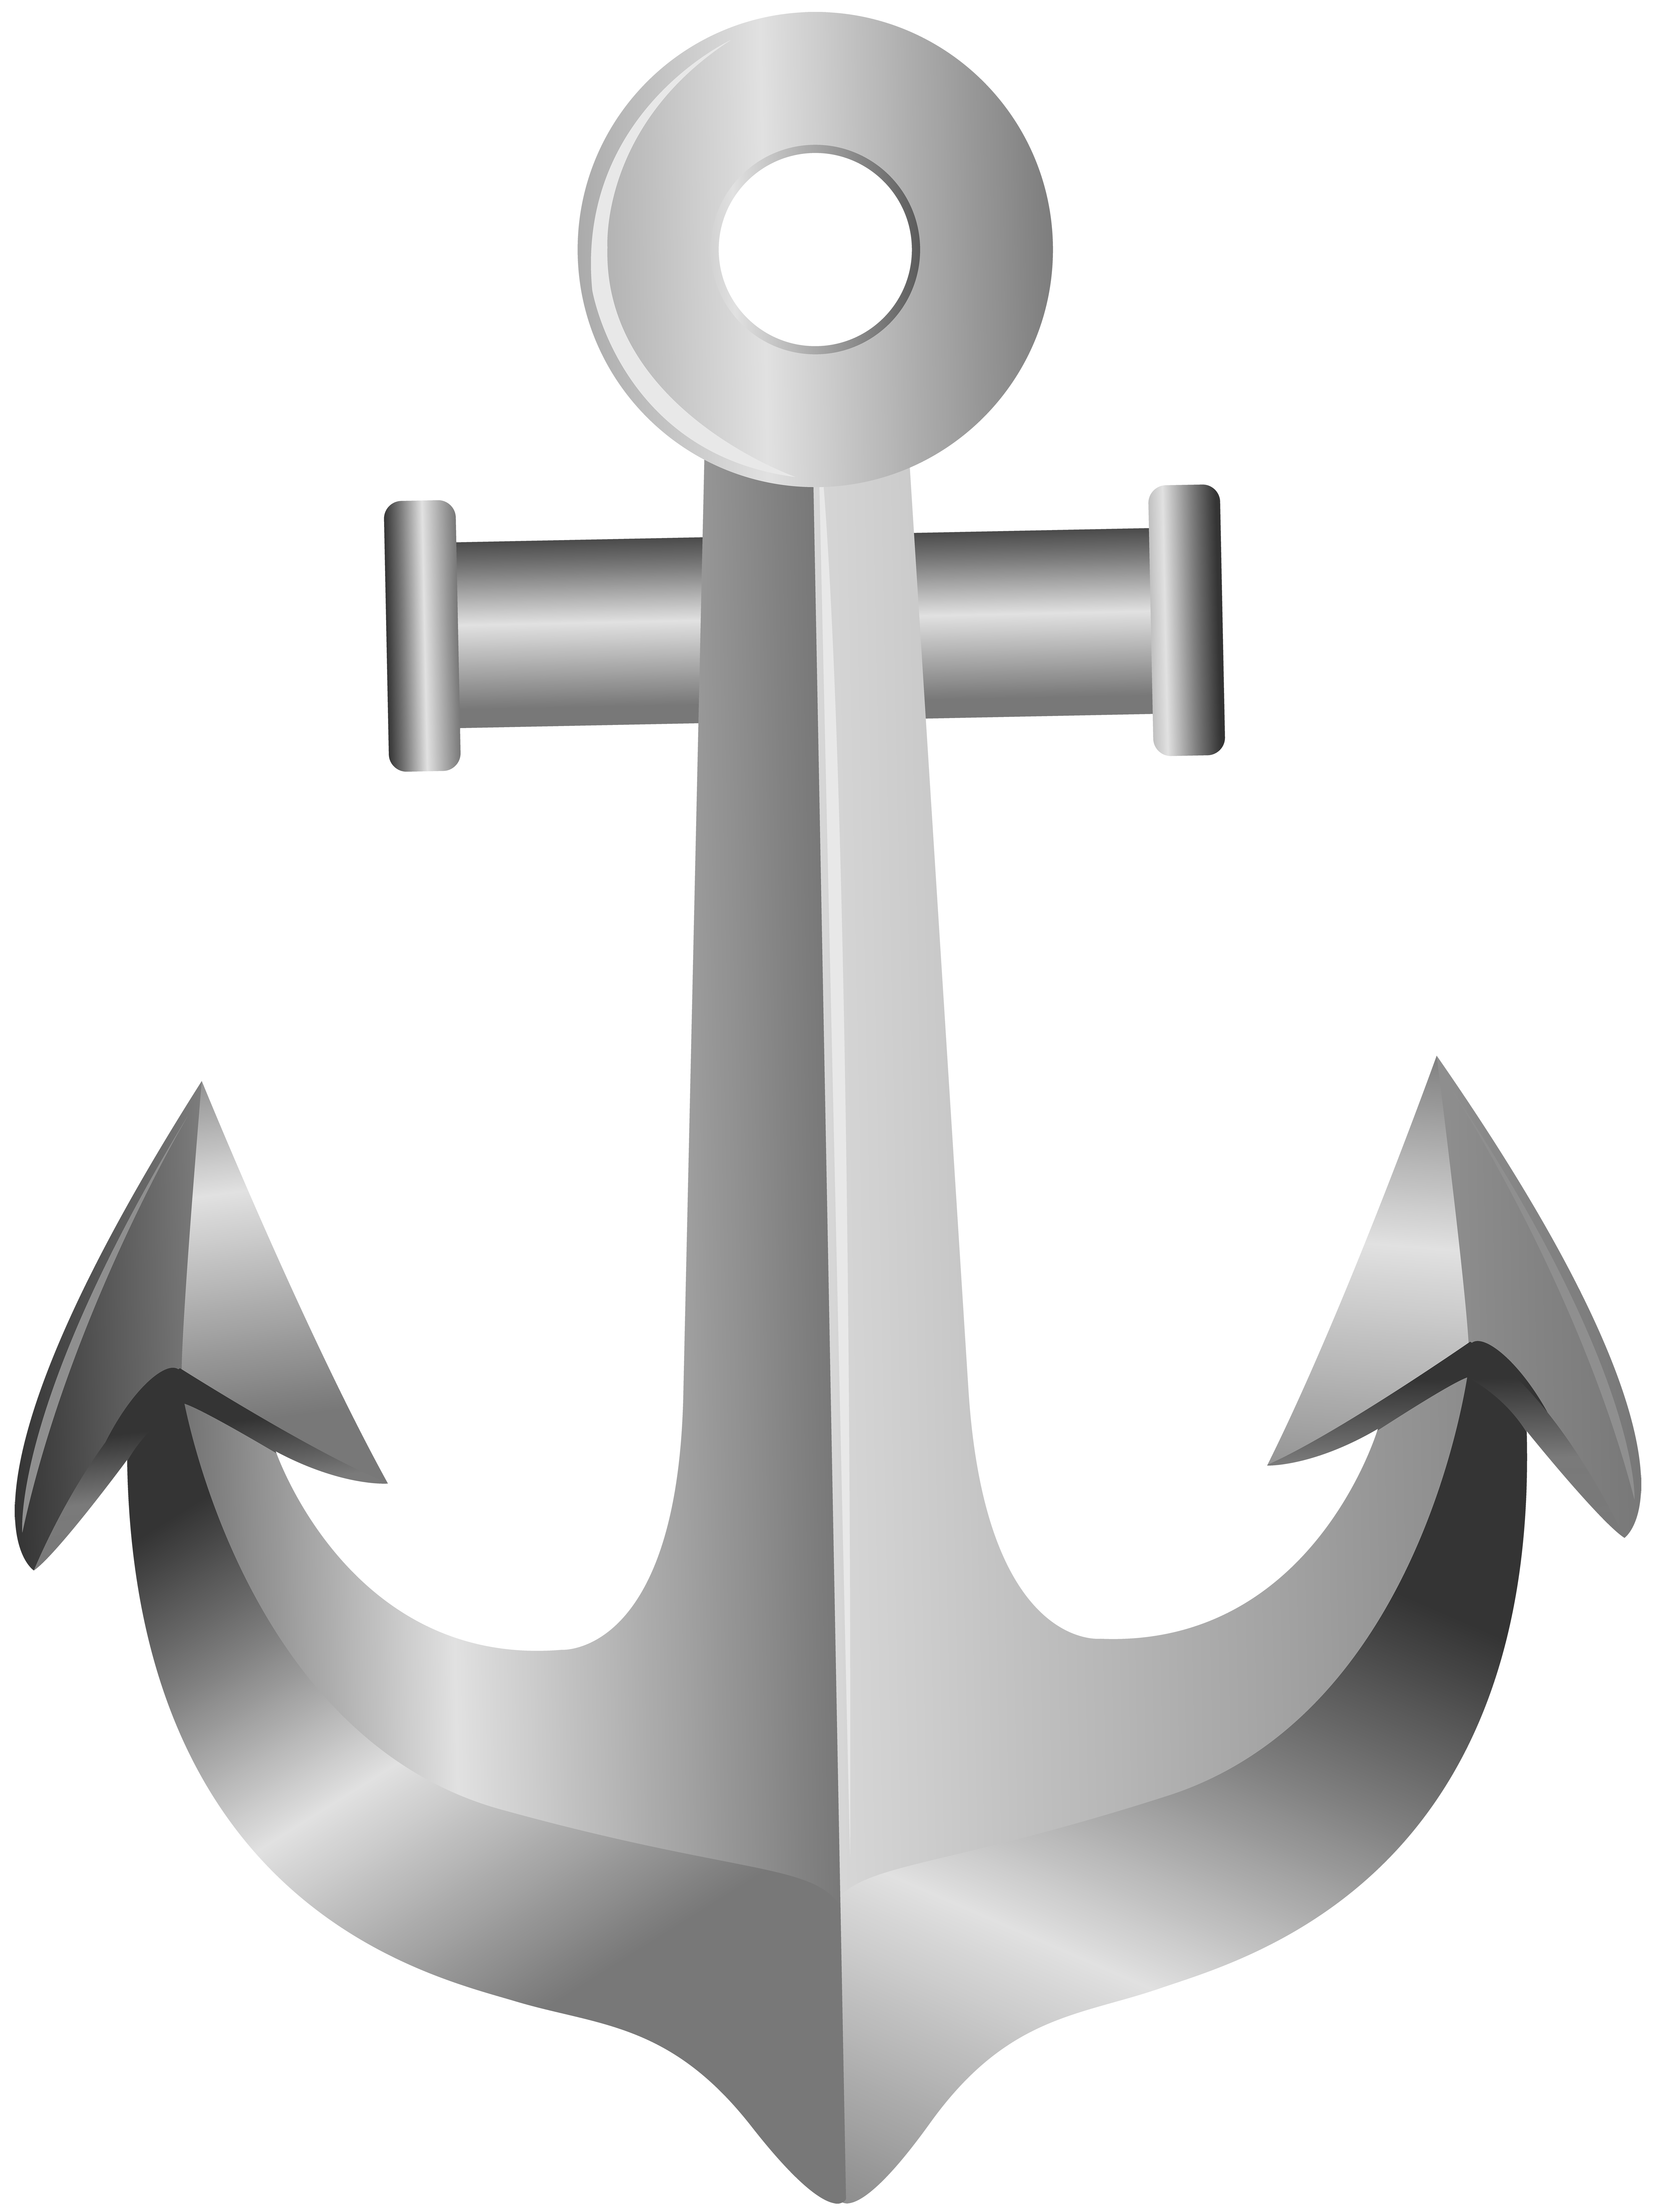 Anchor clipart png. Silver clip art gallery